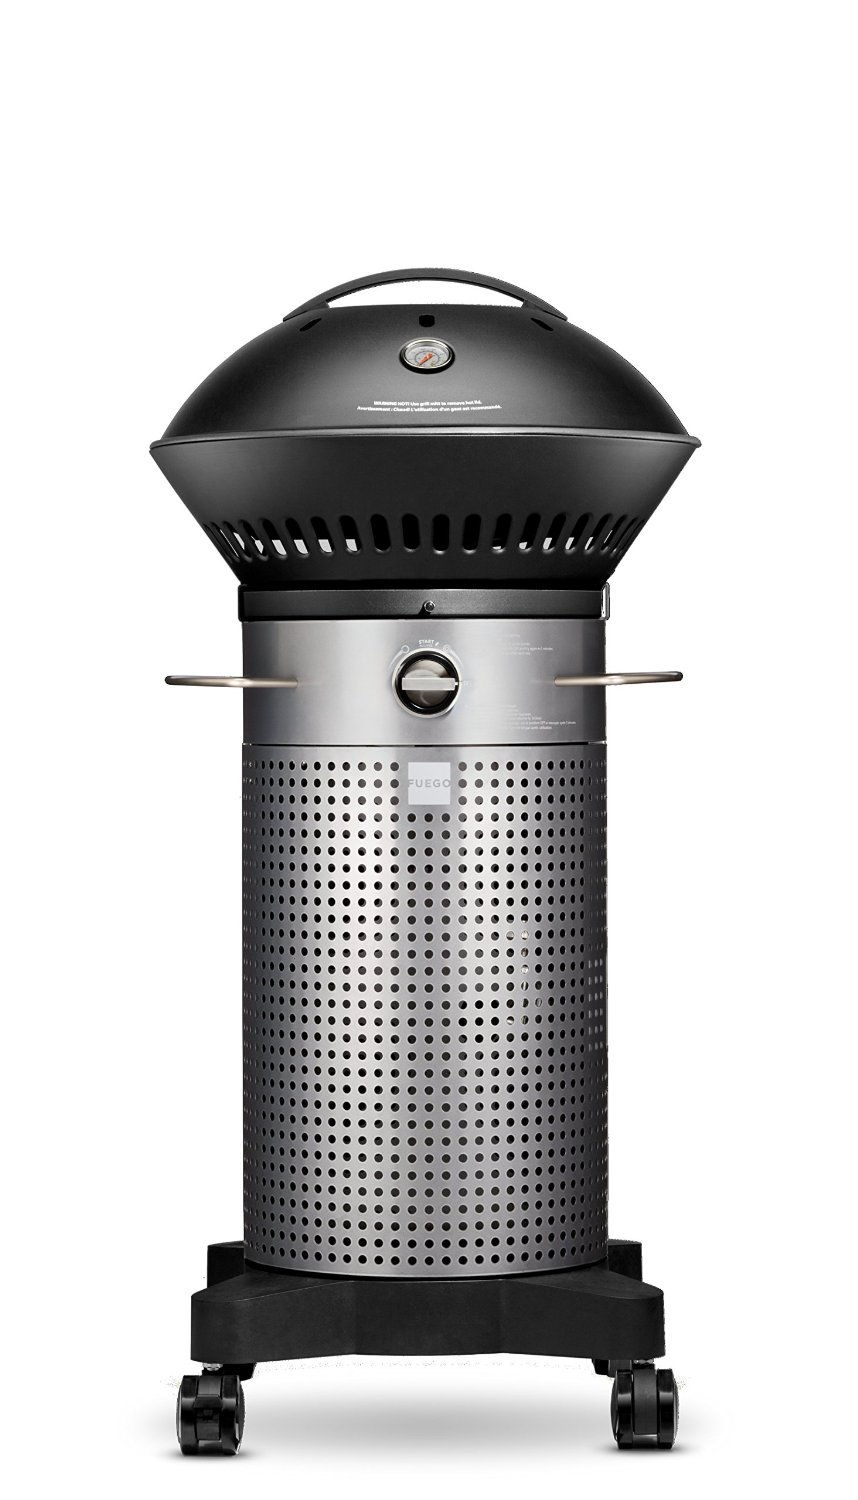 The Best Gas Grill Under 500 For Your Propane Grilling